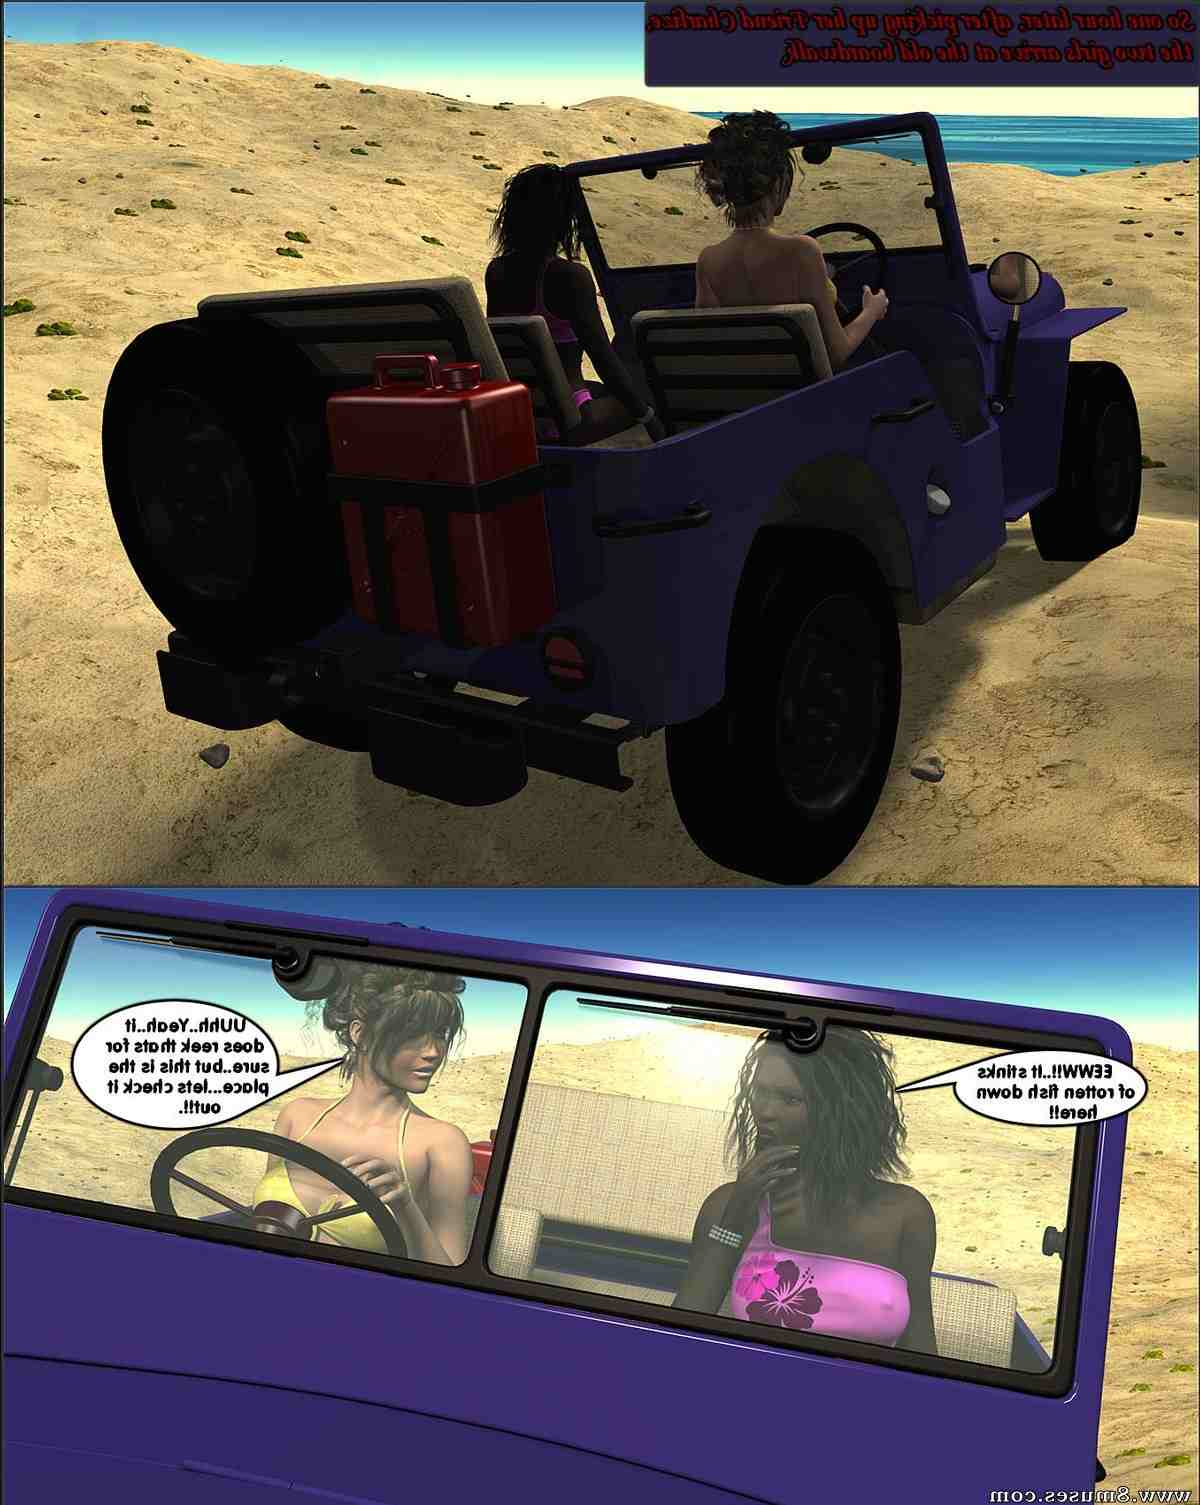 DarkSoul3D-Comics/Monstrous-Tales-Return-To-The-Boardwalk Monstrous_Tales_-_Return_To_The_Boardwalk__8muses_-_Sex_and_Porn_Comics_24.jpg